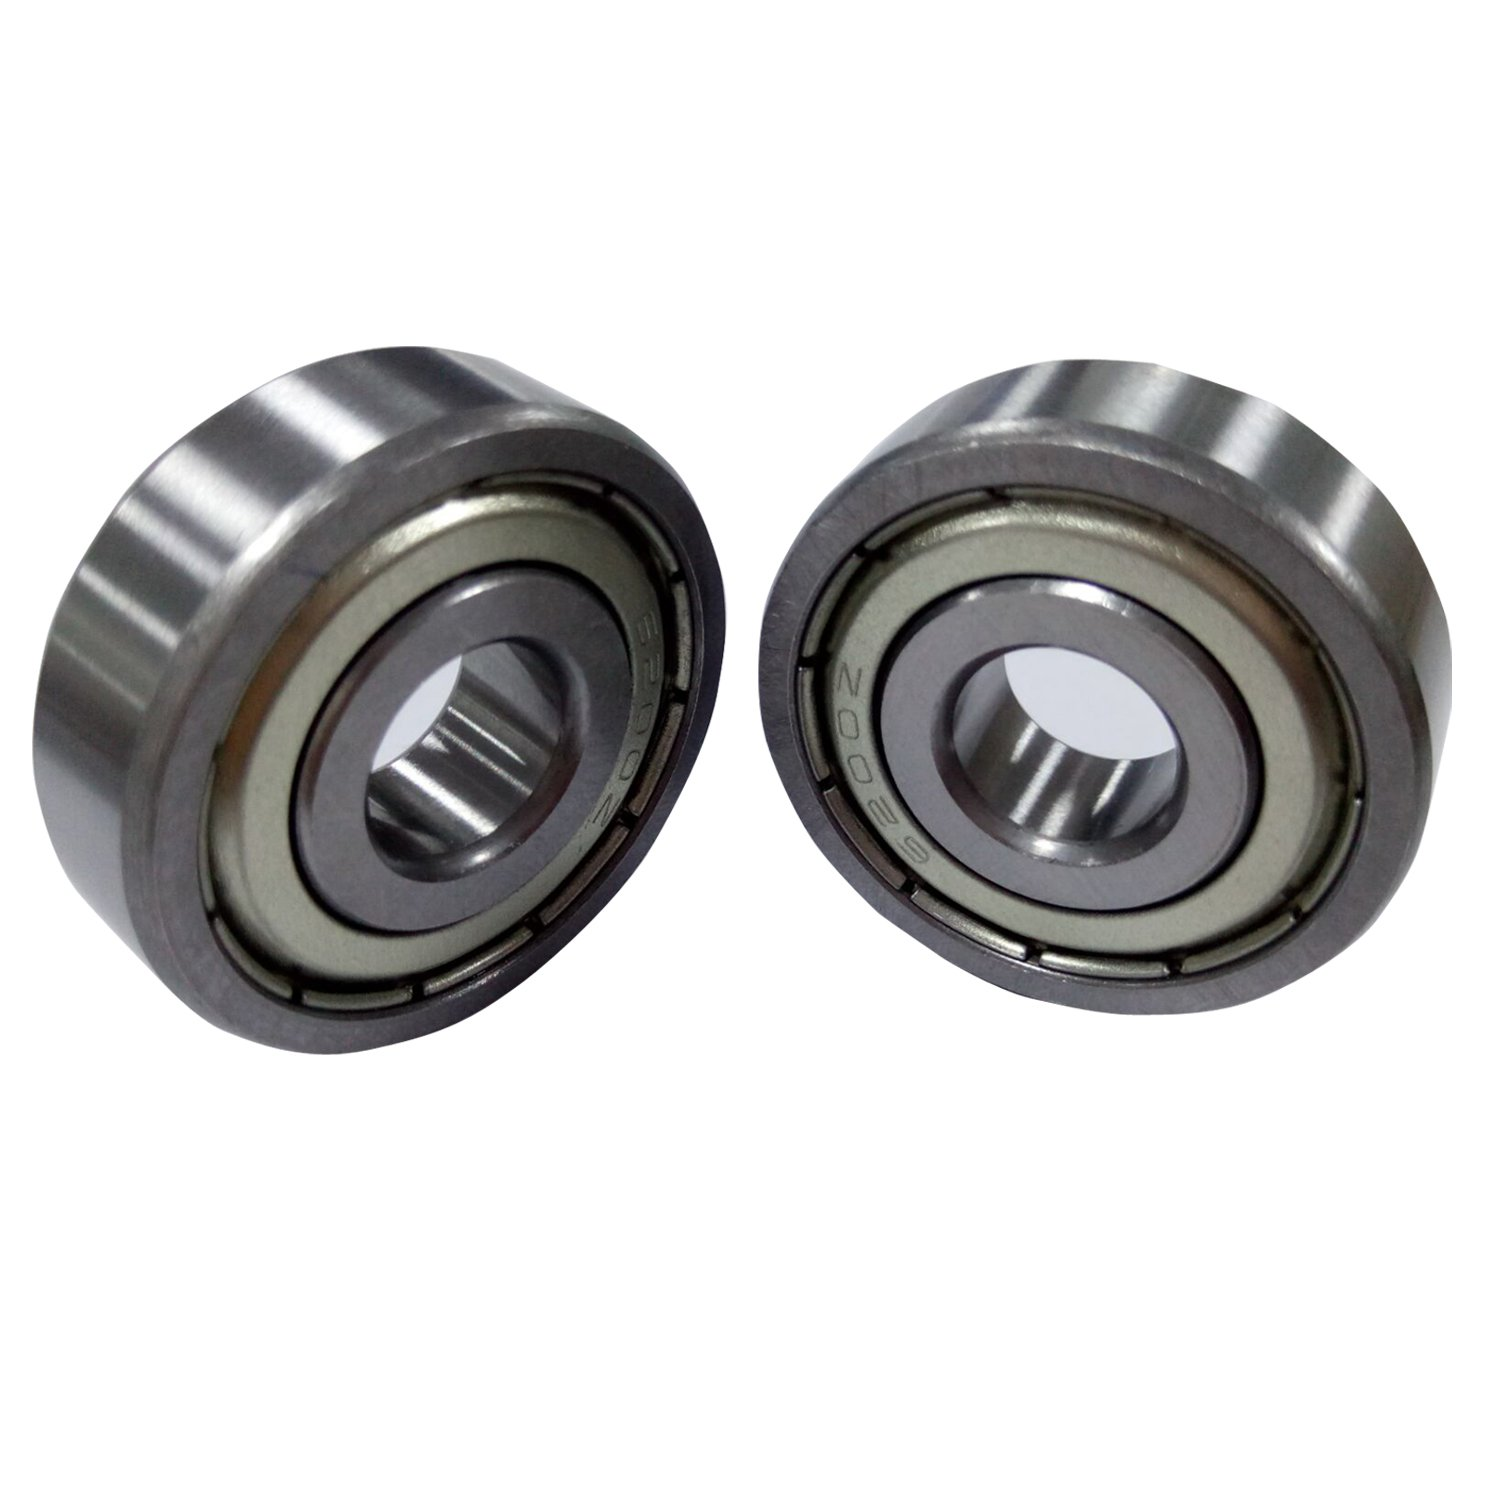 Antrader Set of 10 Metal Shielded 6200Z 10 x 30 x 9mm Deep Groove Ball Bearings Silver Tone